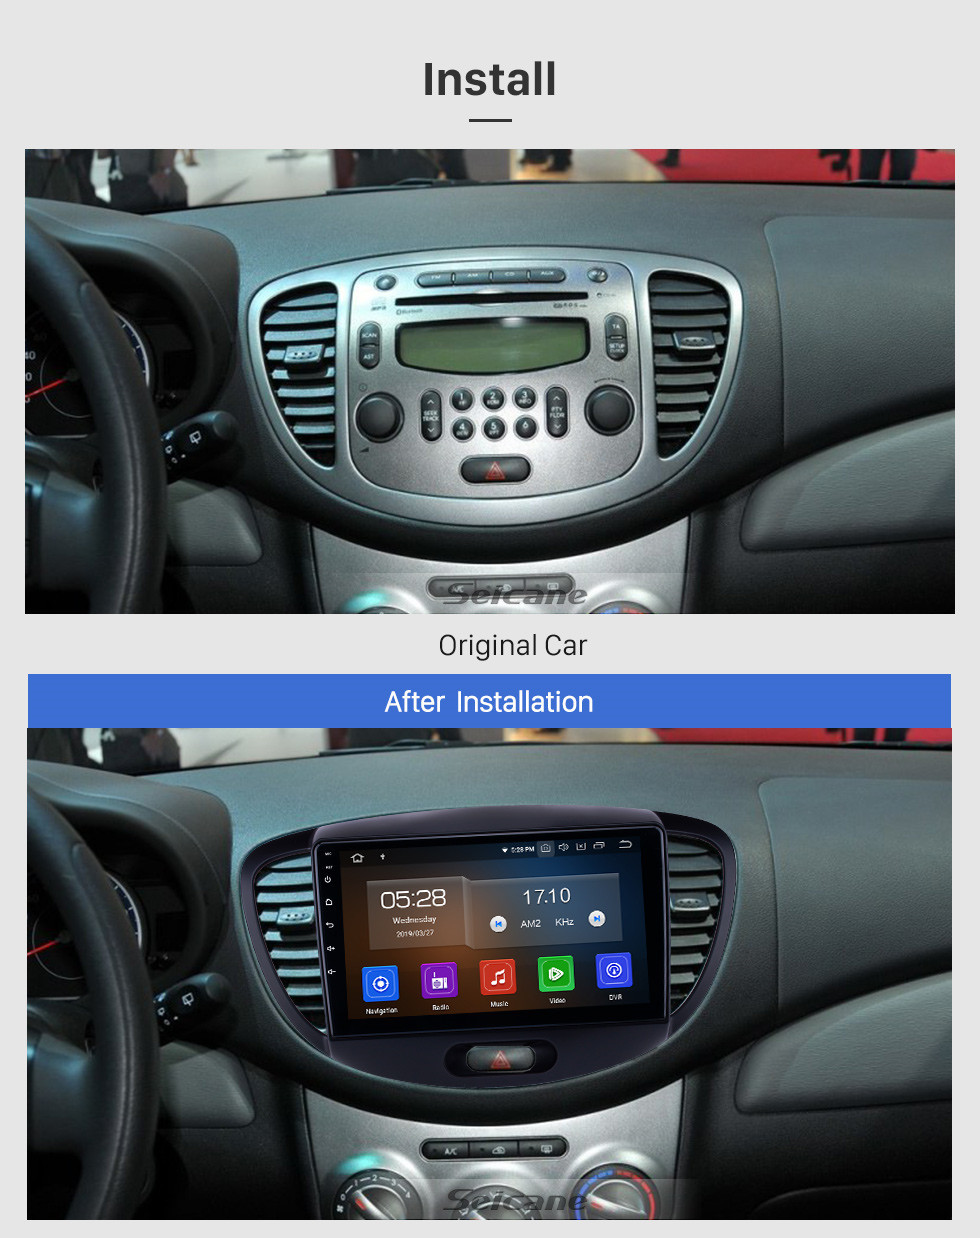 Seicane HD Touchscreen 2010-2013 Old Hyundai i20 Android 10.0 9 inch GPS Navigation Radio Bluetooth USB Carplay WIFI AUX support DAB+ Steering Wheel Control